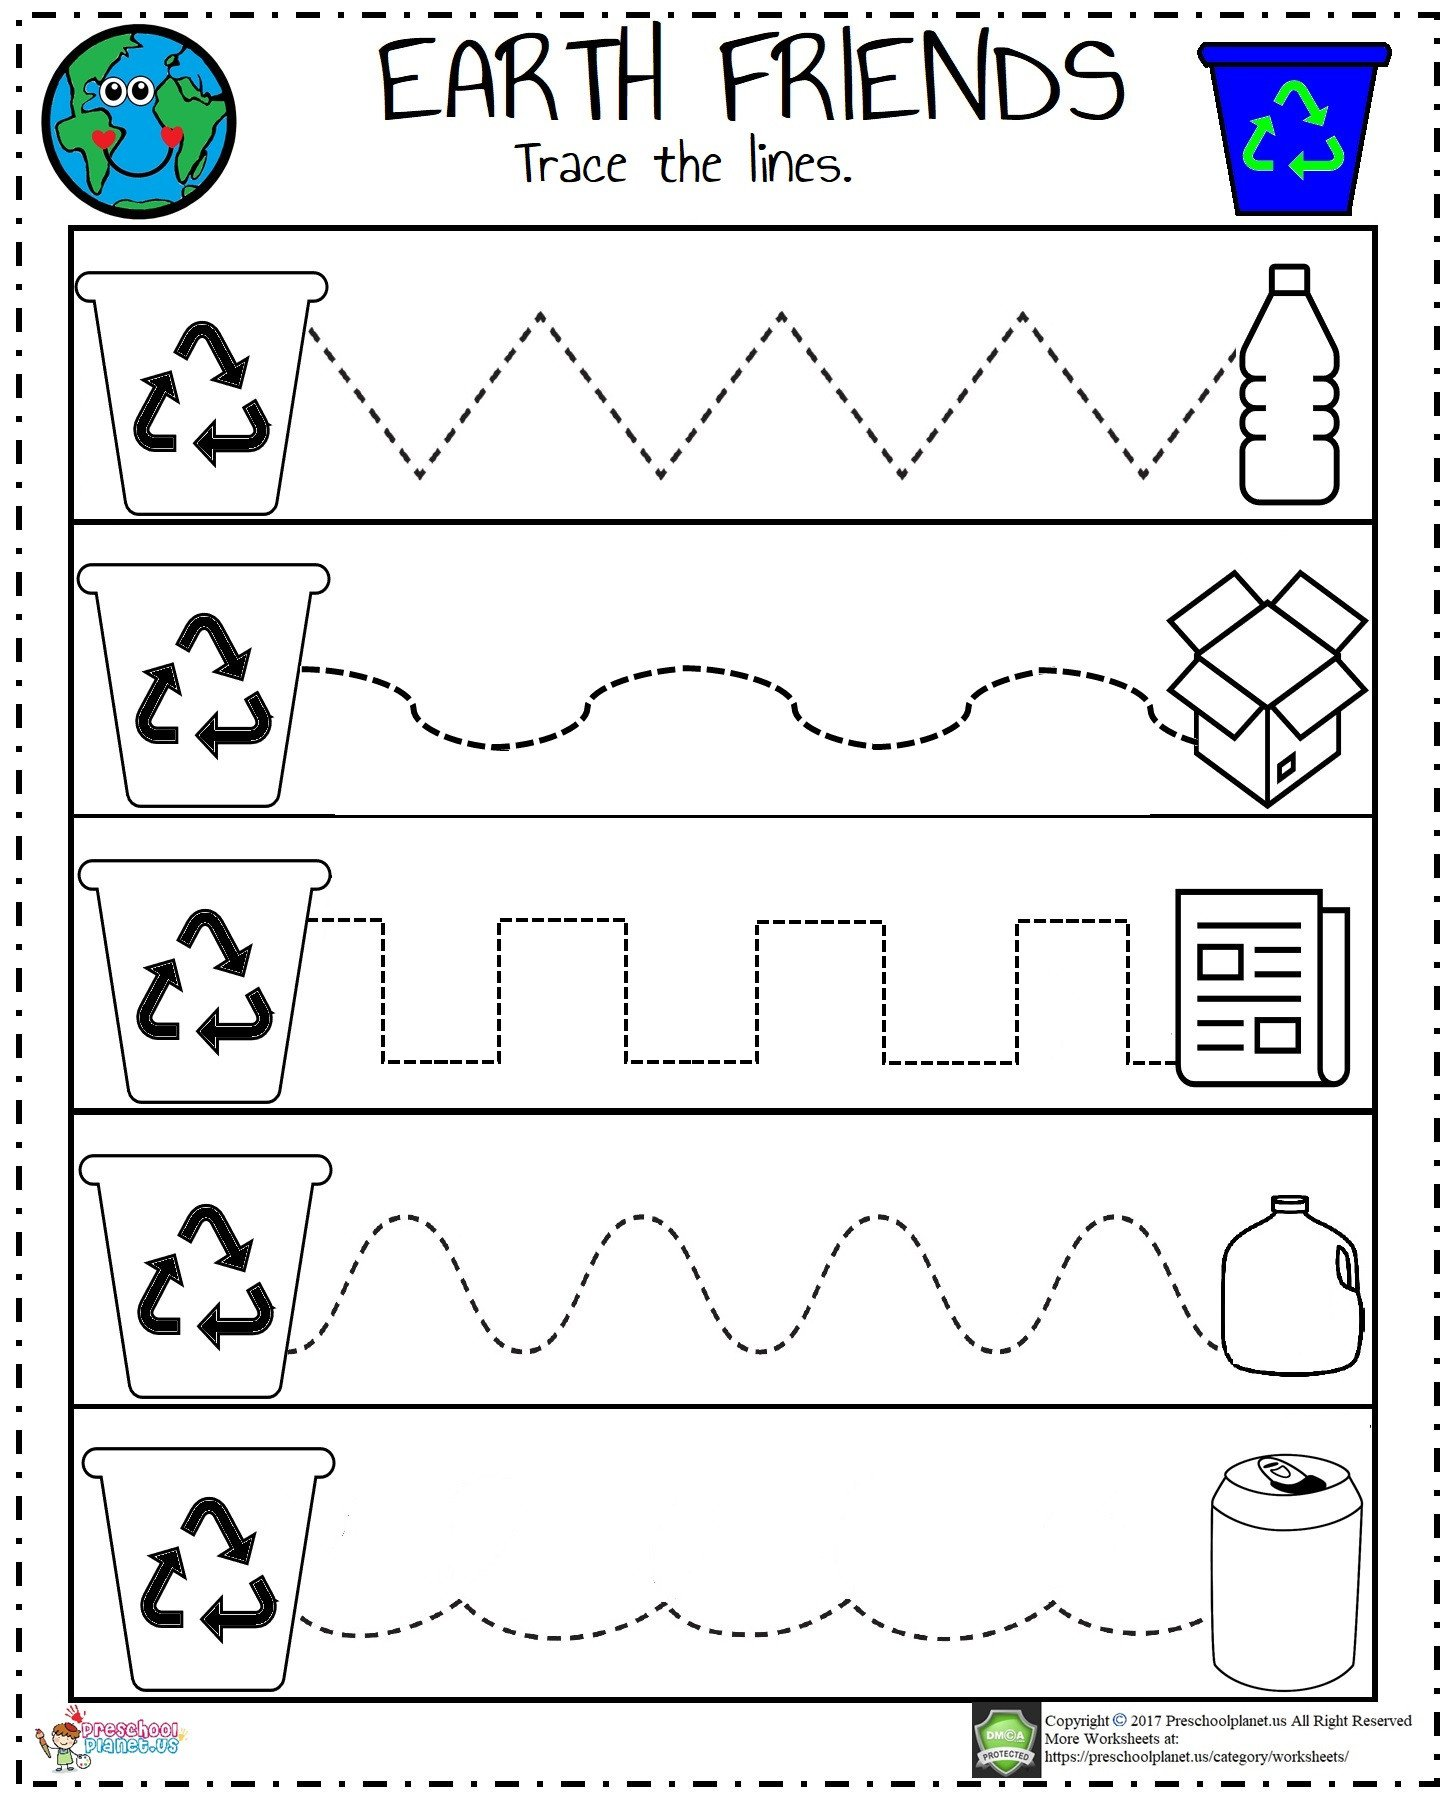 Recycling Worksheets for Kindergarten Preschoolplanet – Preschool Craft Ideas and Worksheets